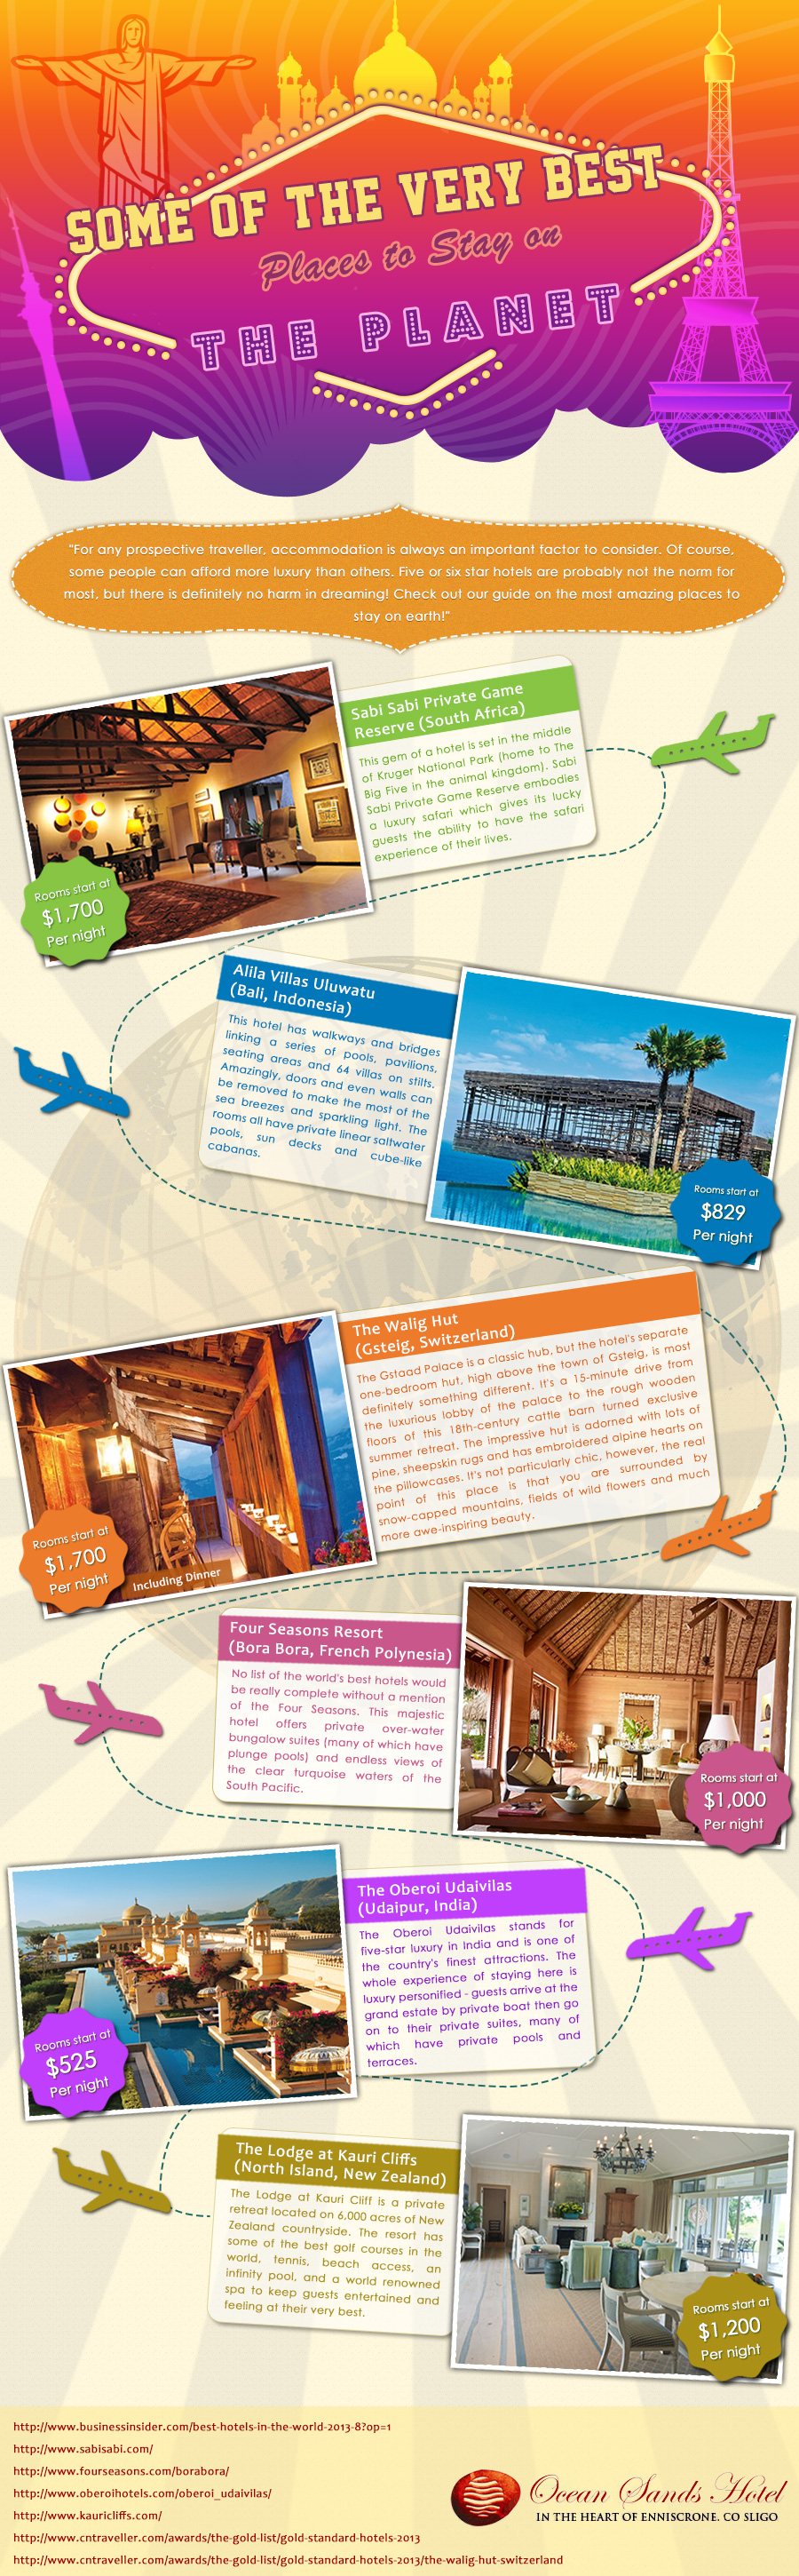 best-places-to-stay-on-the-planet-infographic